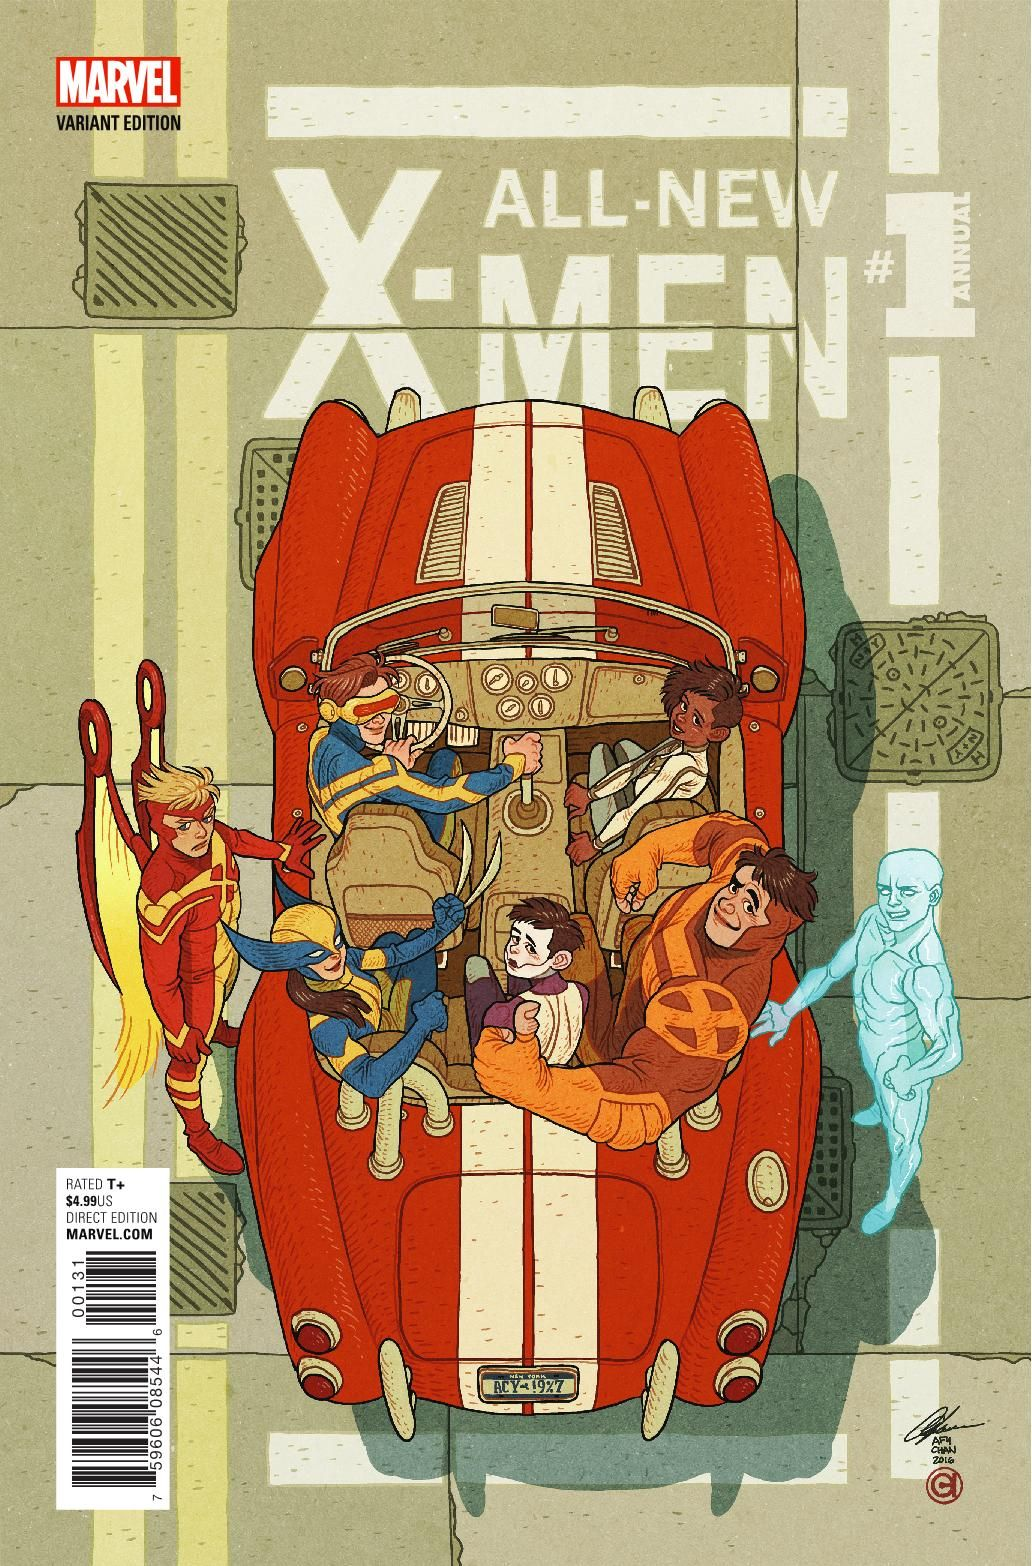 Preview All New X Men Annual 1 Story Sina Grace Rex Ogle Art Cory Smith Cover Cory Smith Publisher Marv Marvel Comics Covers Illustration Comic Artist